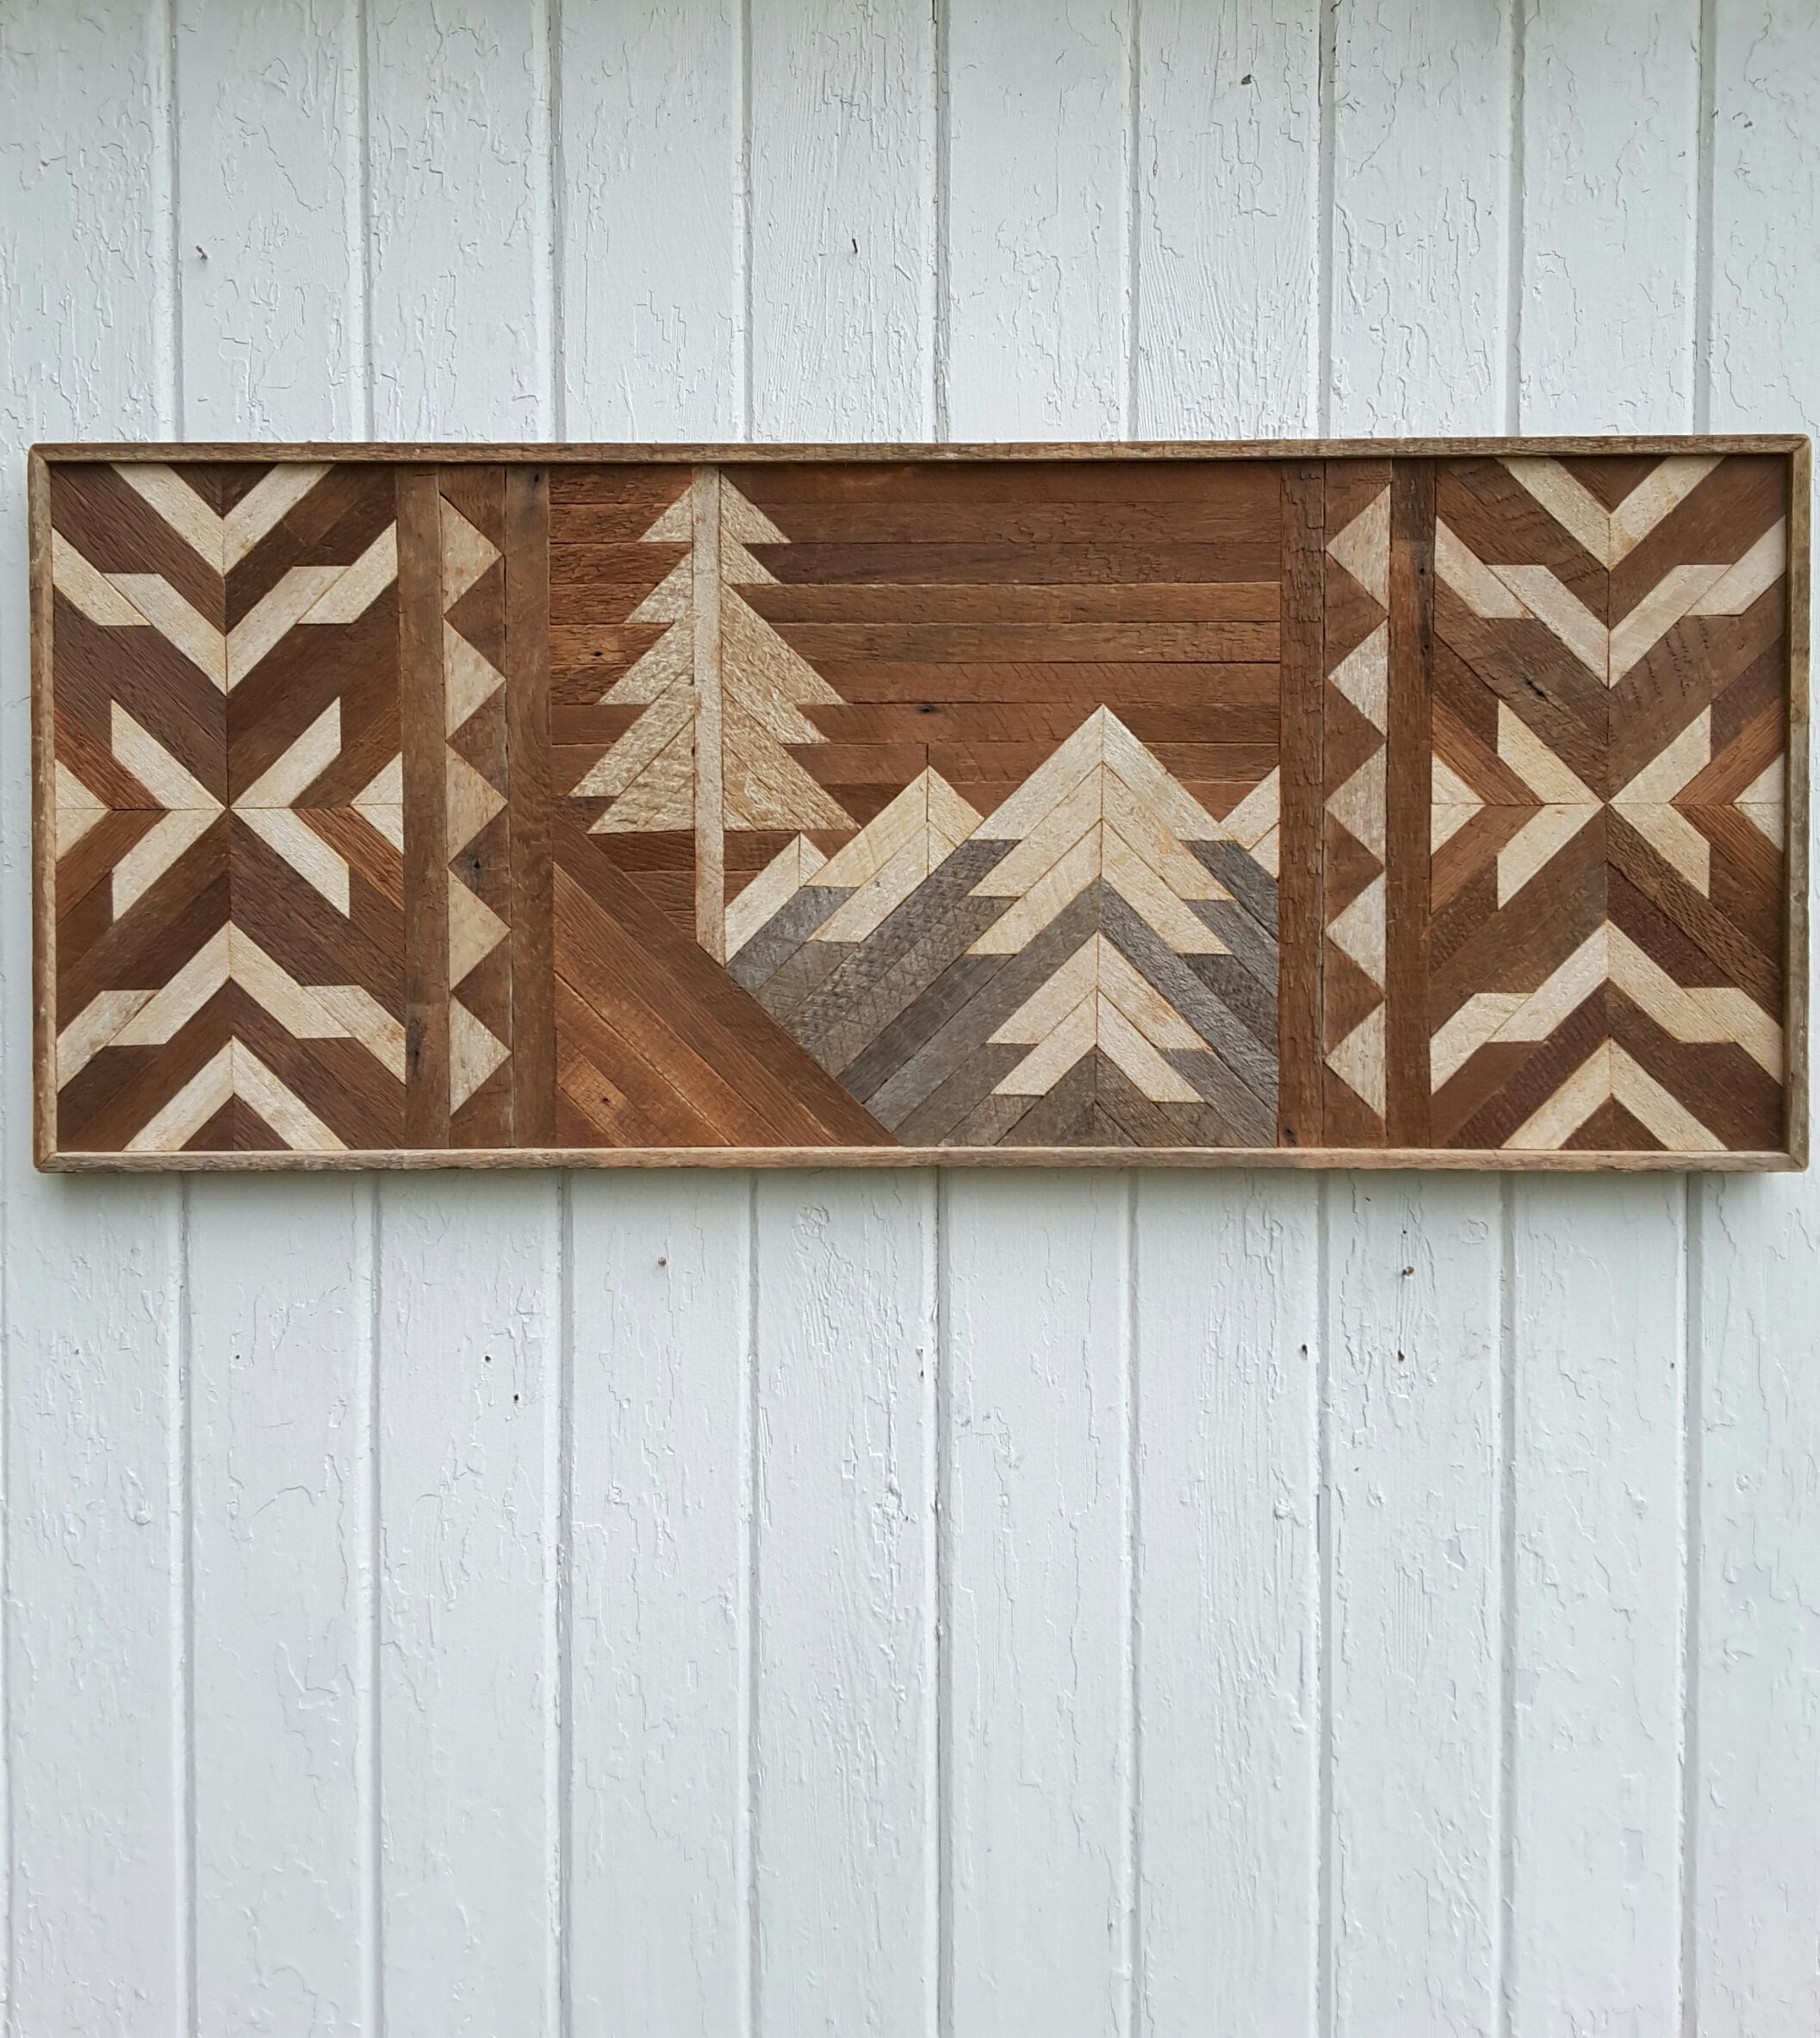 Handmade Unique One Of A Kind Wall Art Using Reclaimed Wood In Geometric Design Boarders And Mosai Wood Wall Art Reclaimed Wood Wall Art Wood Wall Art Decor